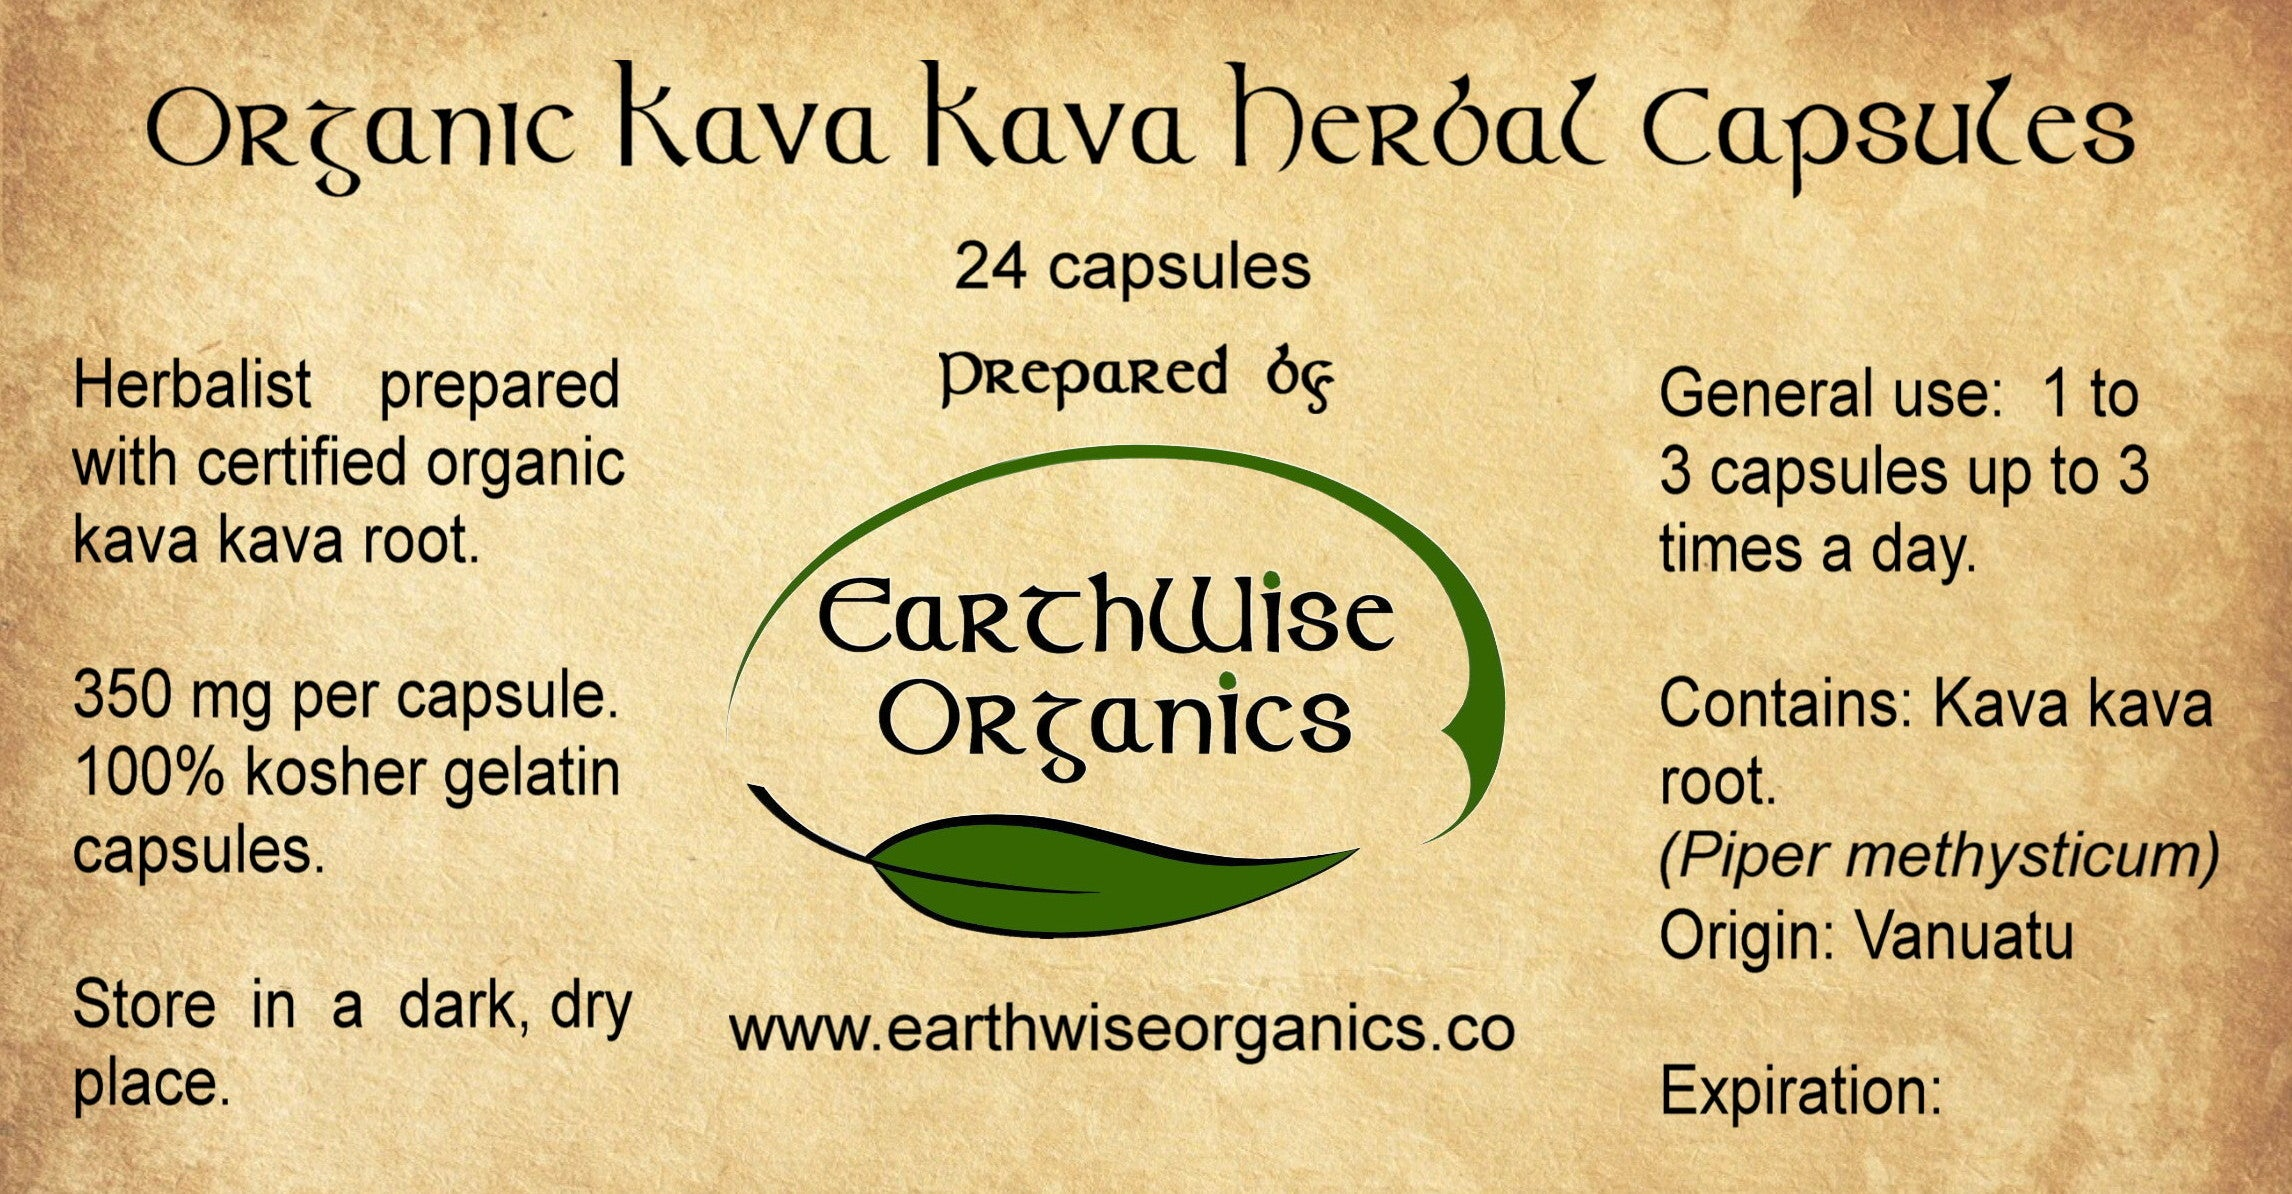 kava kava organic herbal capsules label